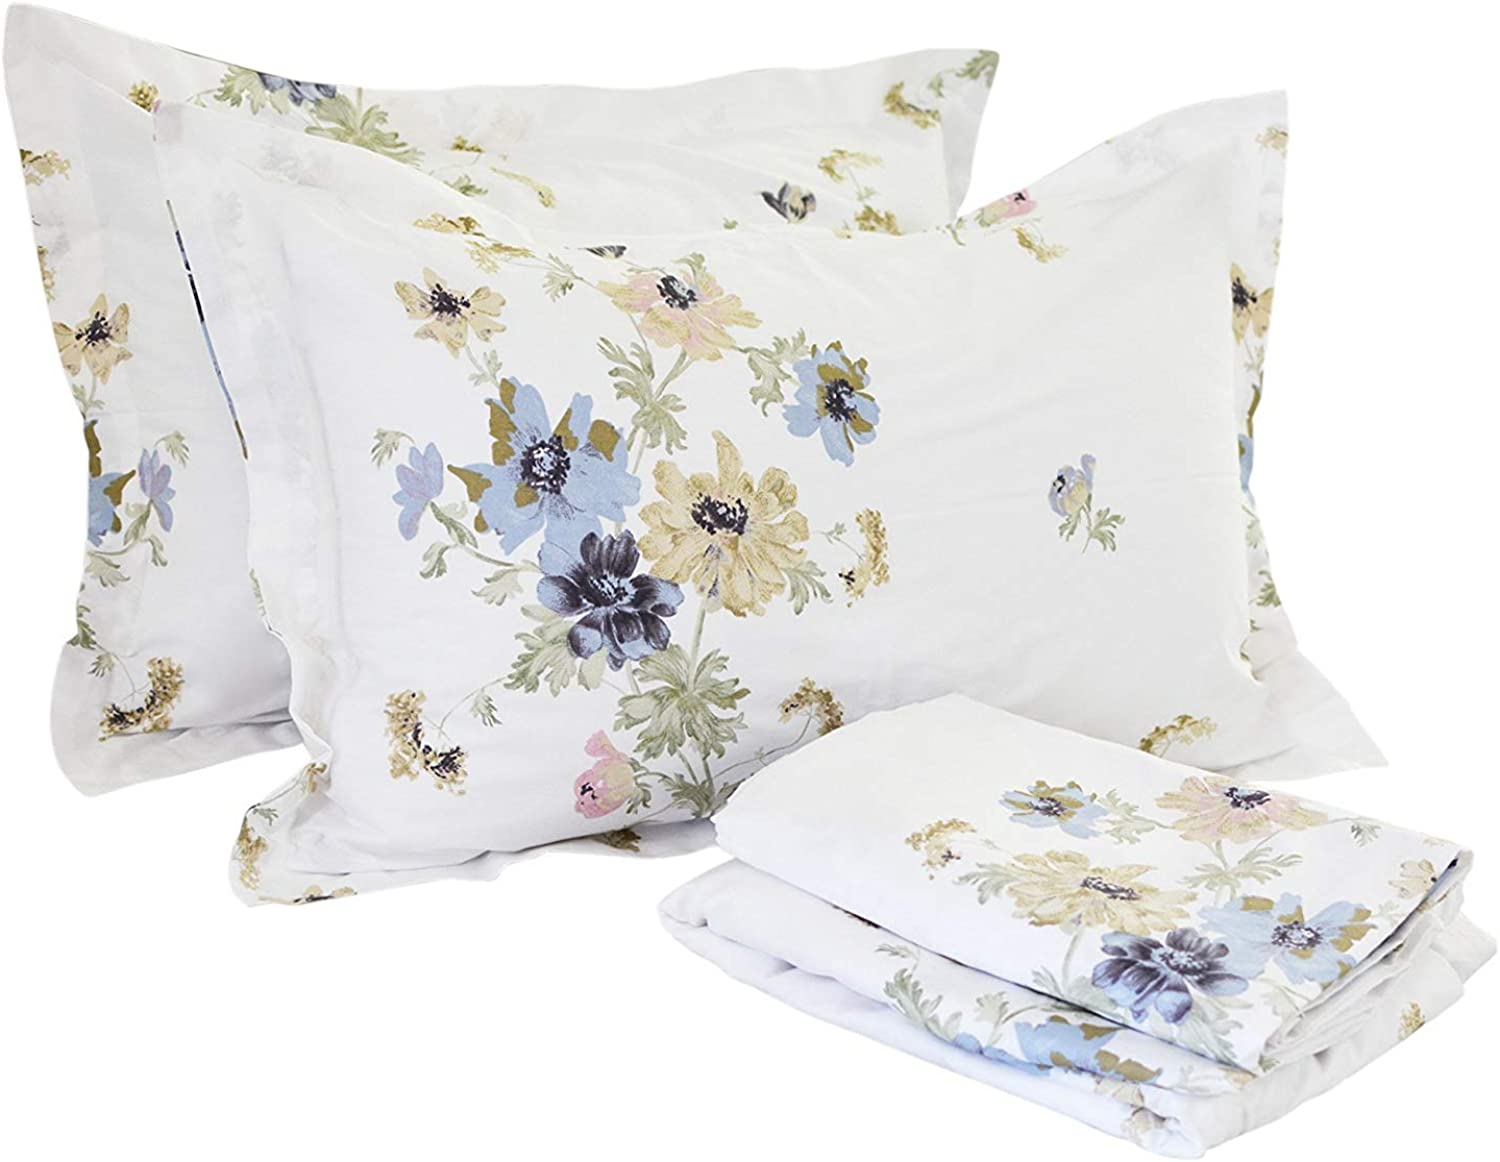 FADFAY Sheet Set Twin XL Farmhouse Bedding Shabby White Floral 100% Cotton Hypoallergenic Dorm Room Bedding Deep Pocket Fitted Sheet 4Pieces Twin Extra Long Size